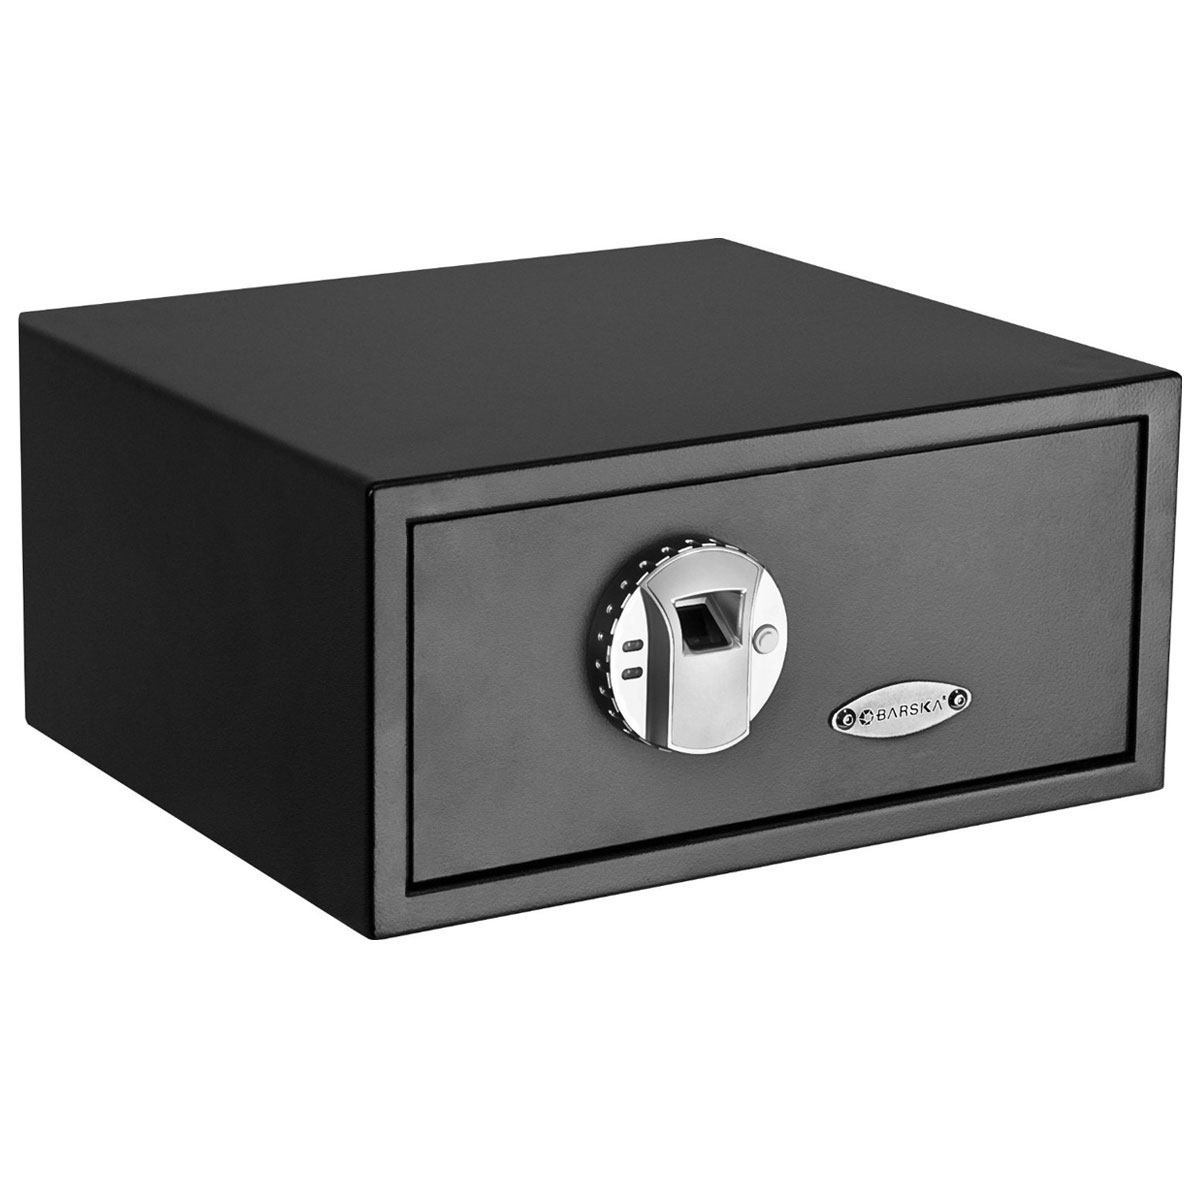 Best Biometric Gun Safes 2020